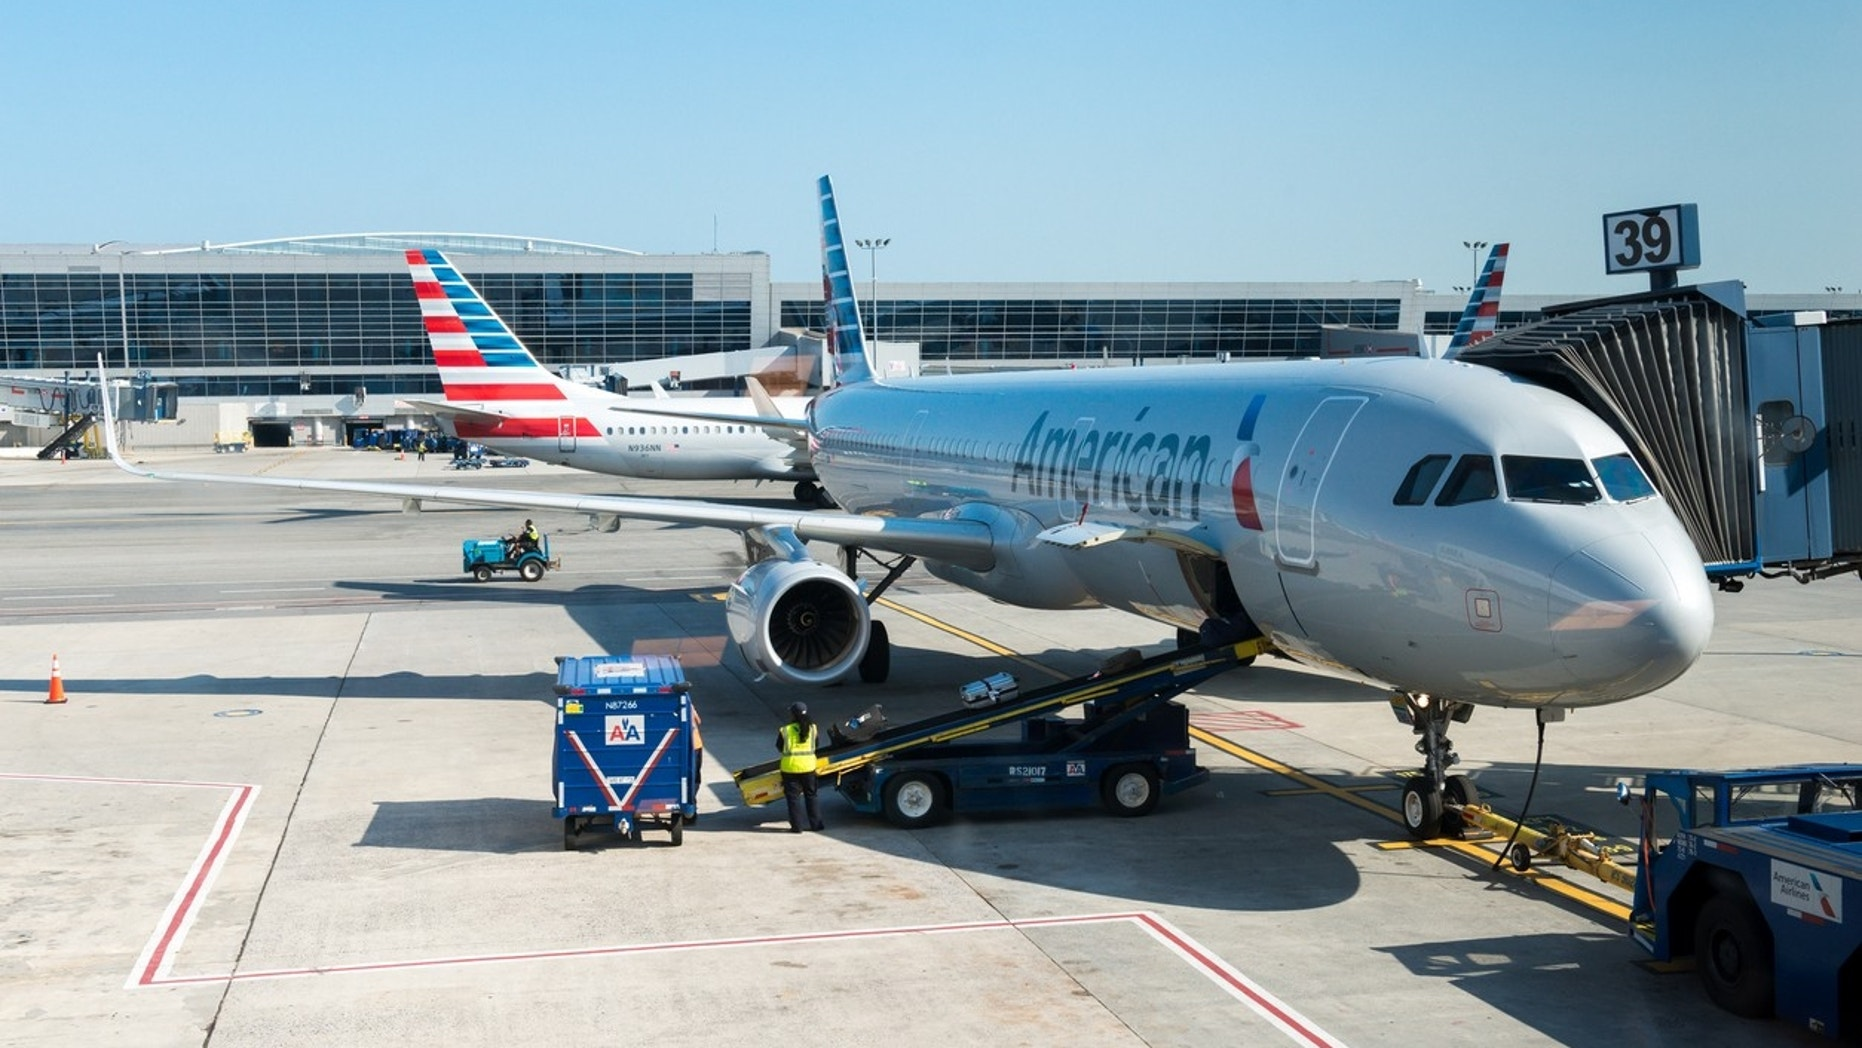 American Airlines Flight Makes Emergency Landing After Passengers Say 'Flames' Came out of Engine